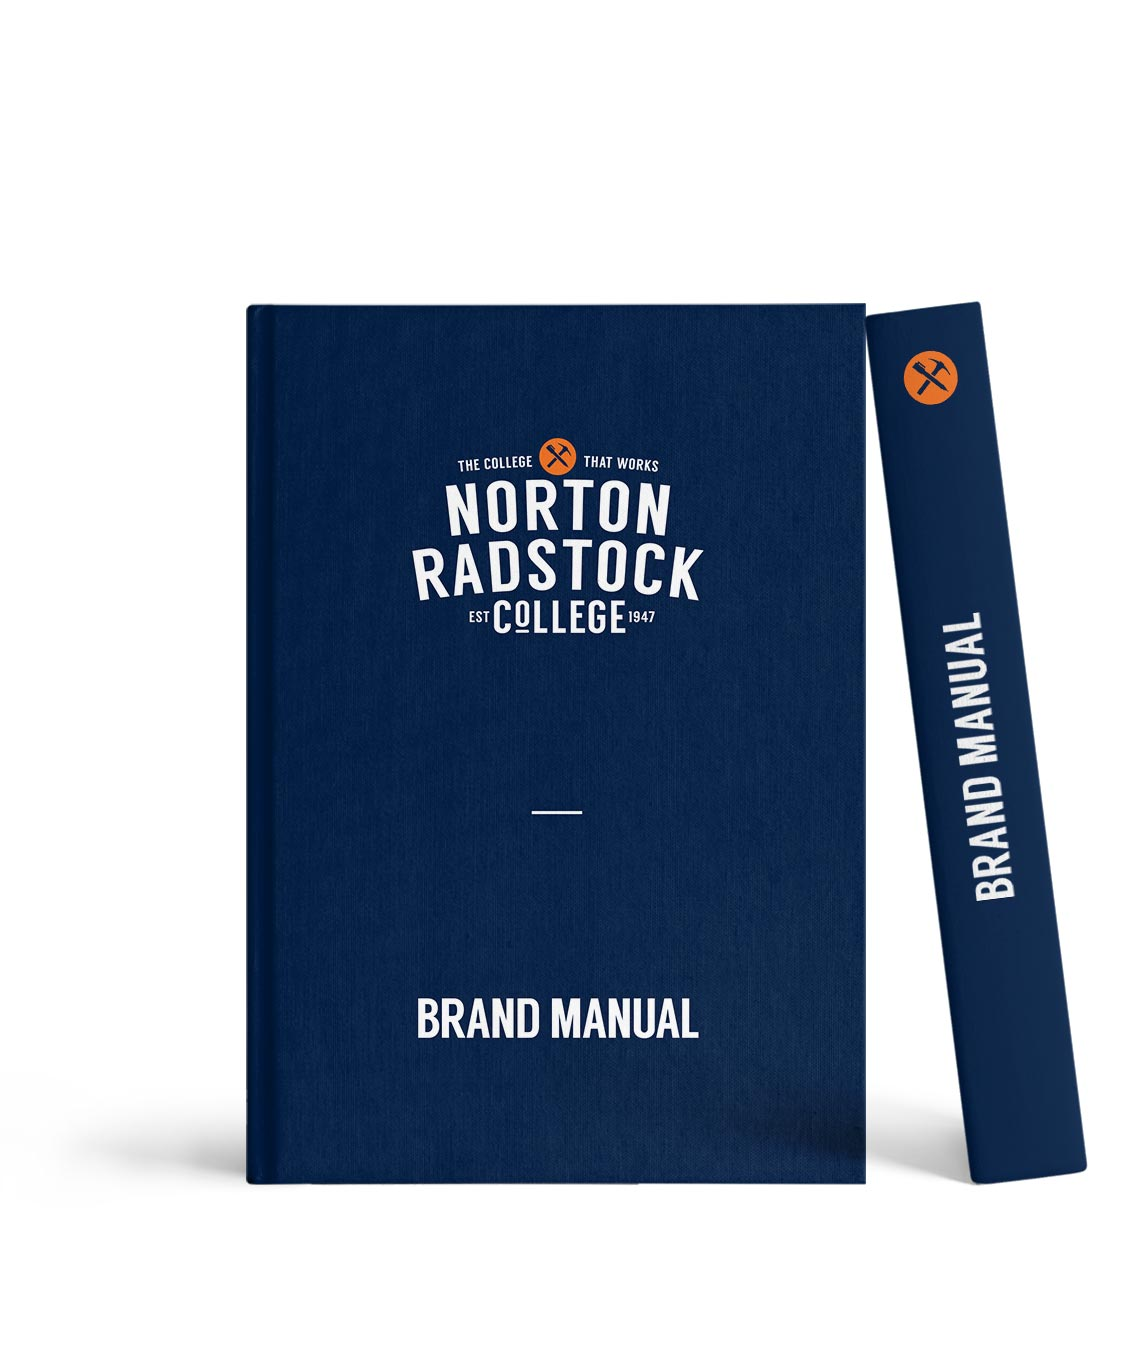 The brand manual